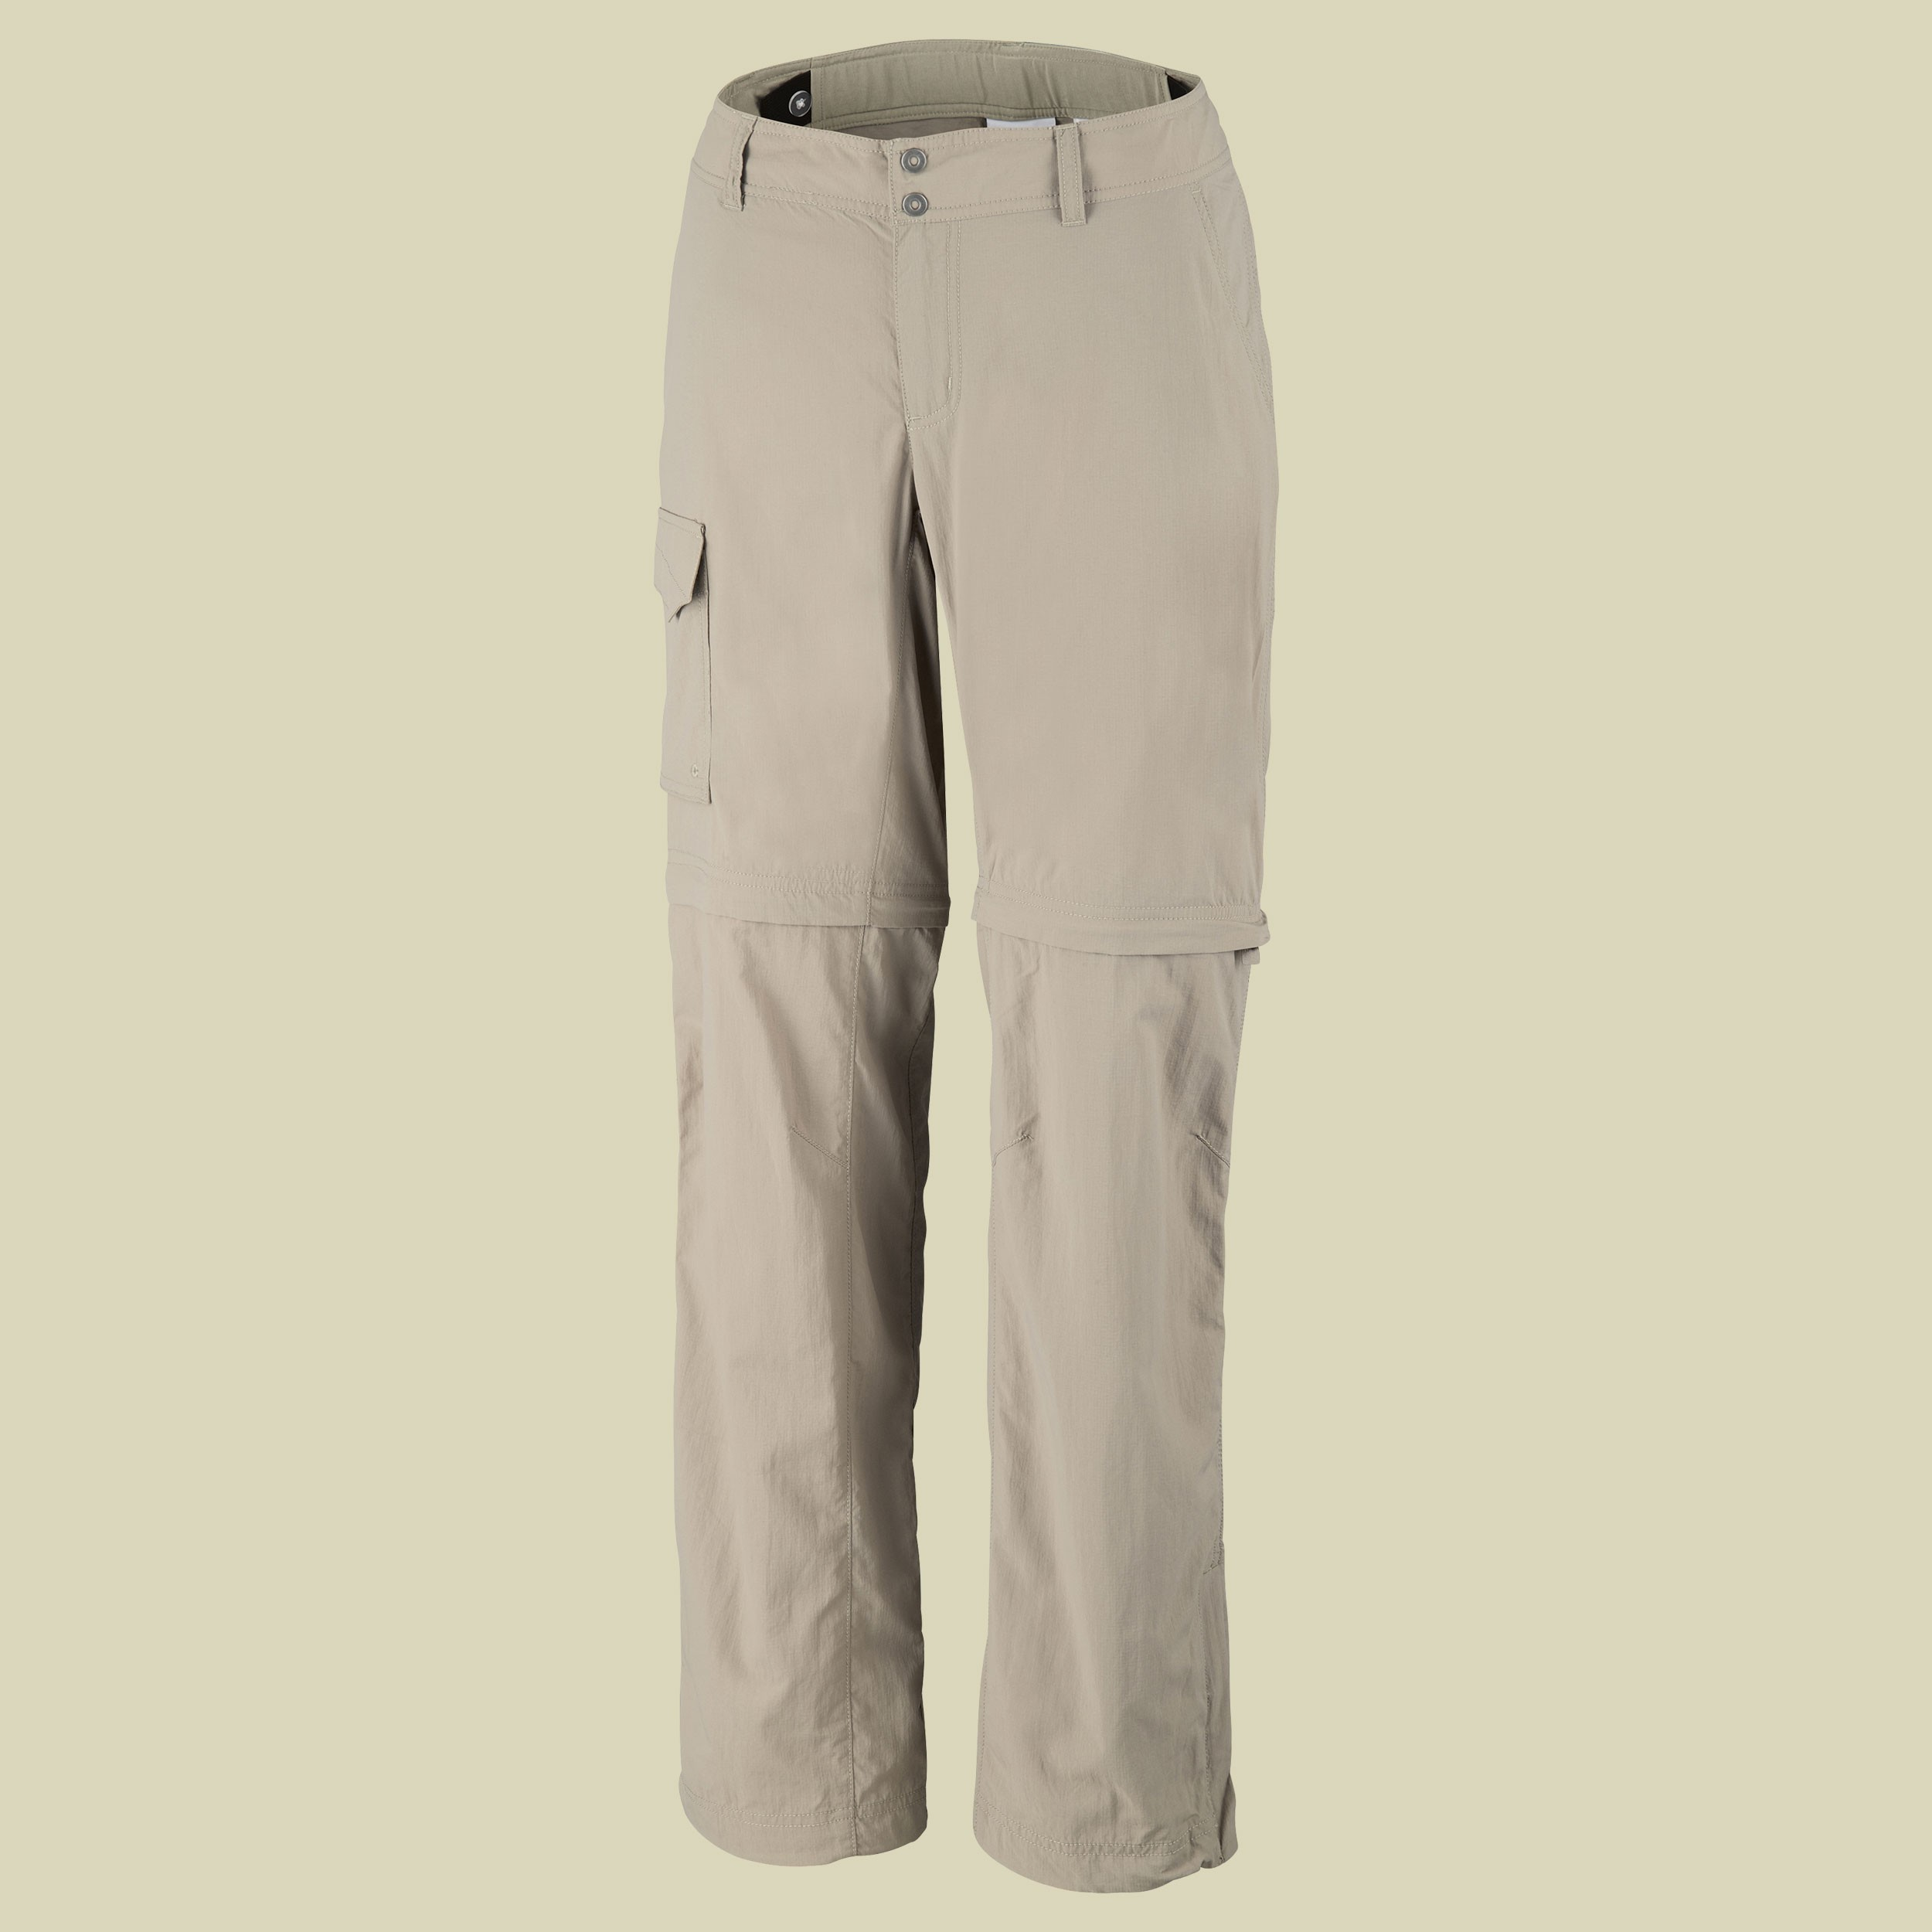 Silver Ridge Convertible Pant Women